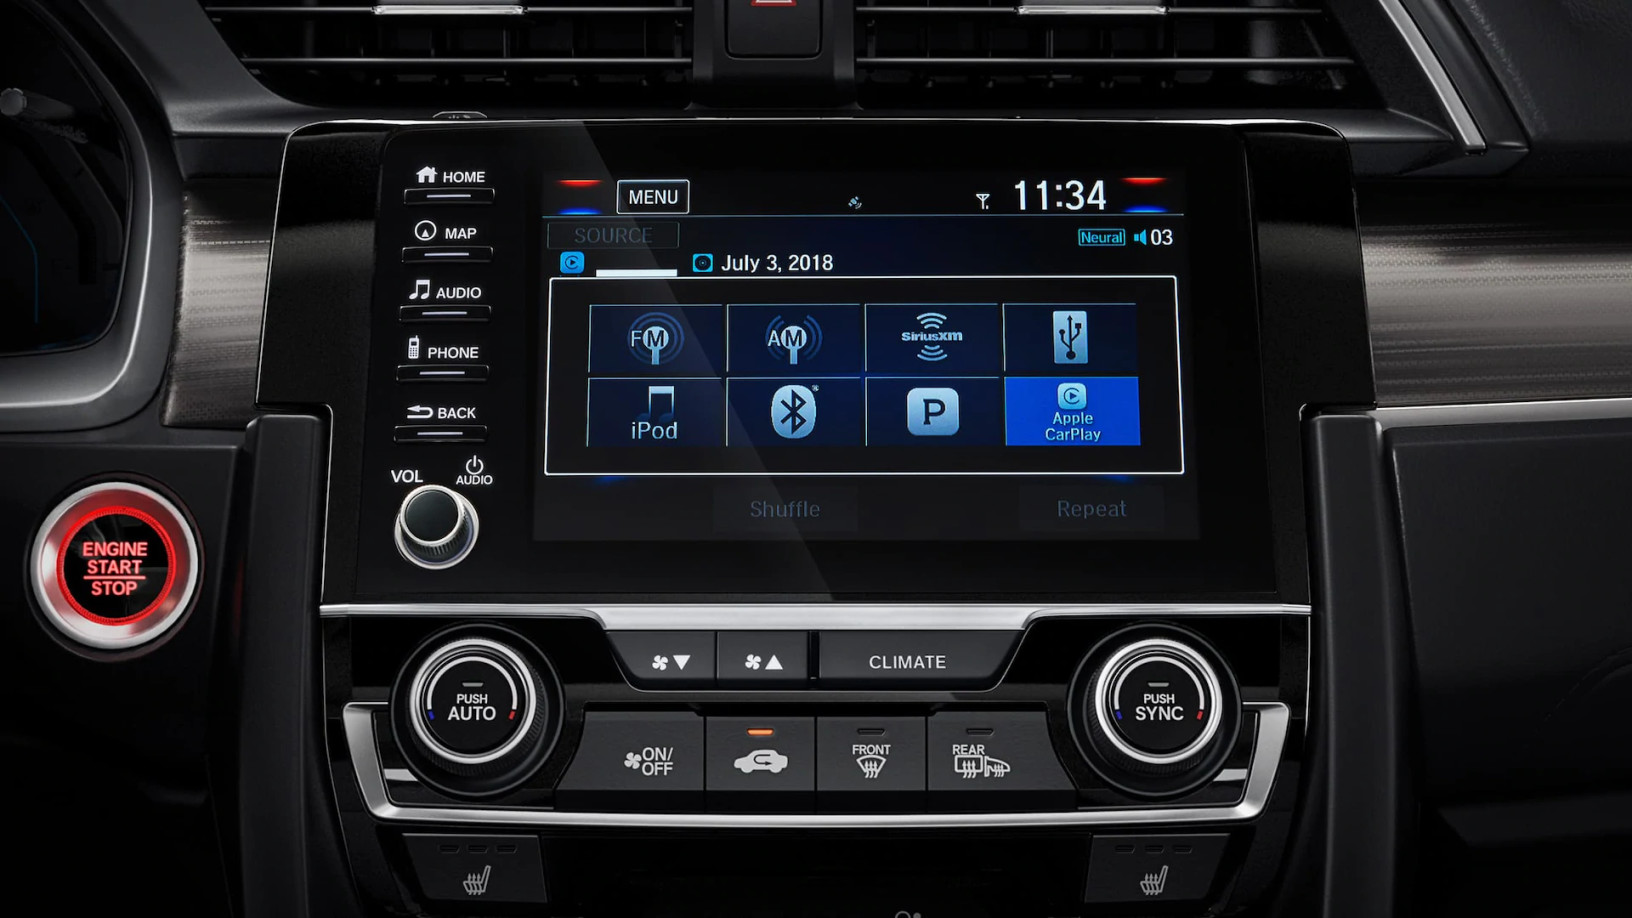 Stay Connected in the 2020 Civic